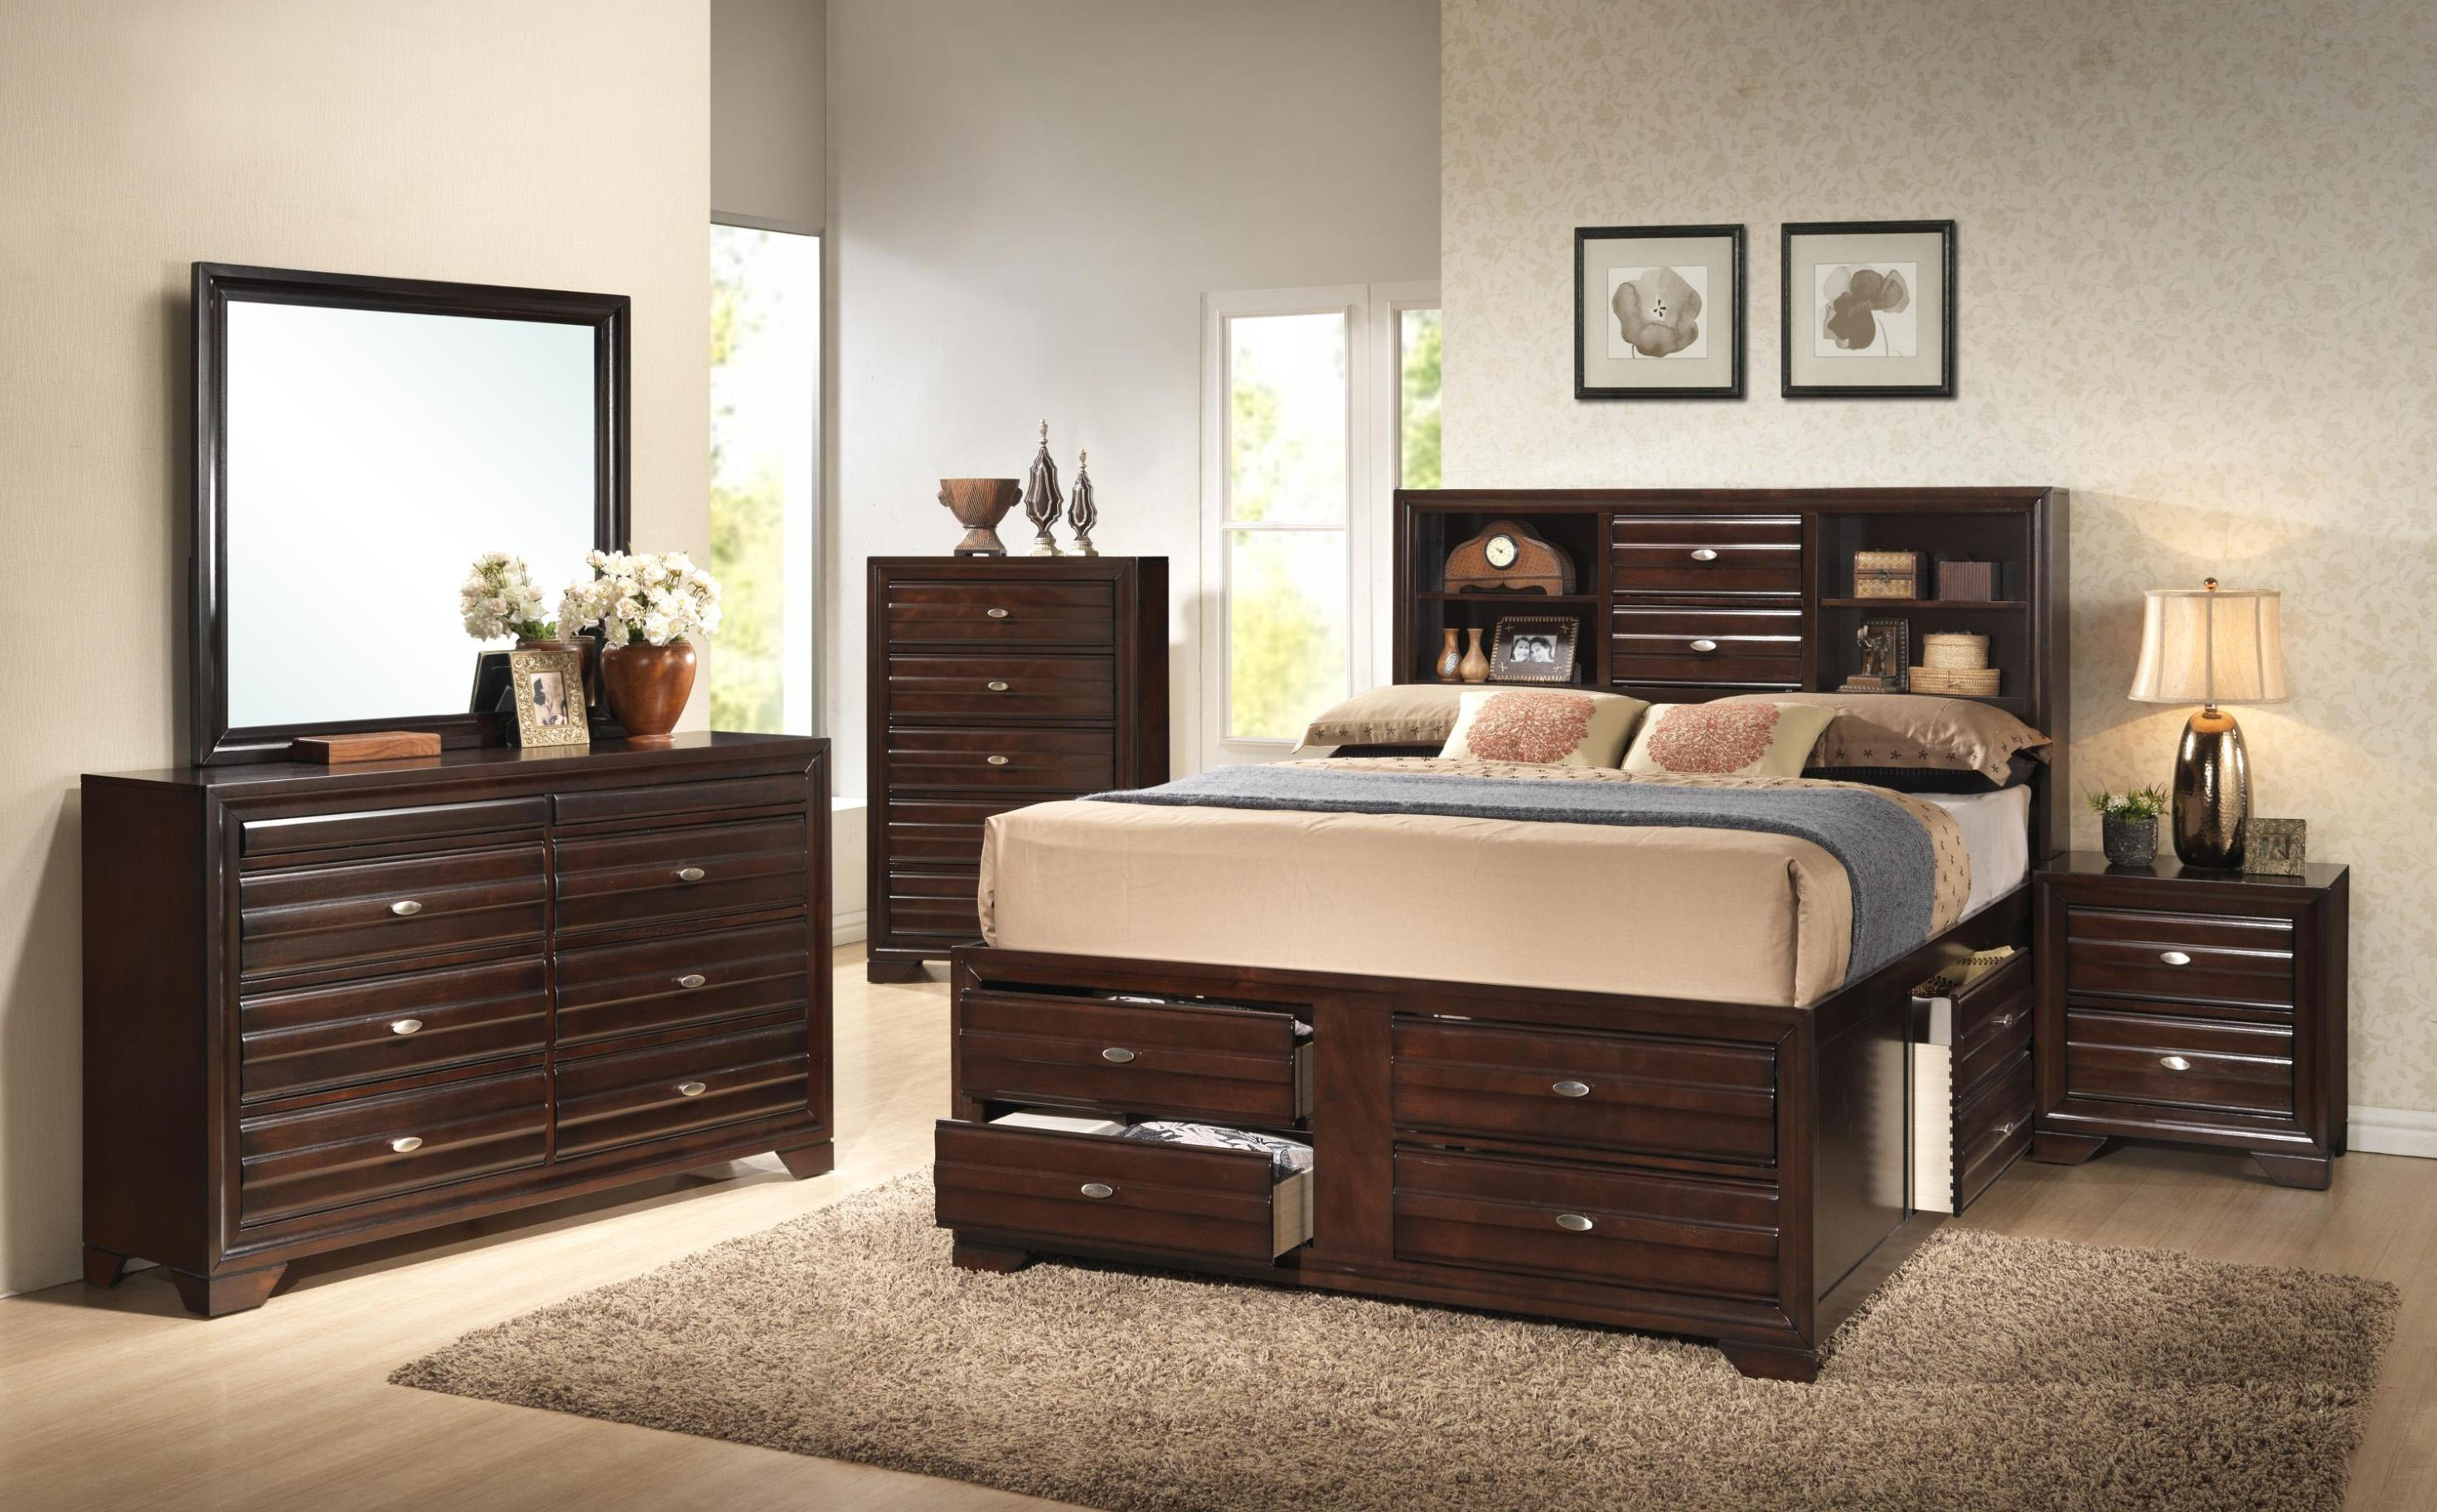 Image of: Captains Bed Queen Size